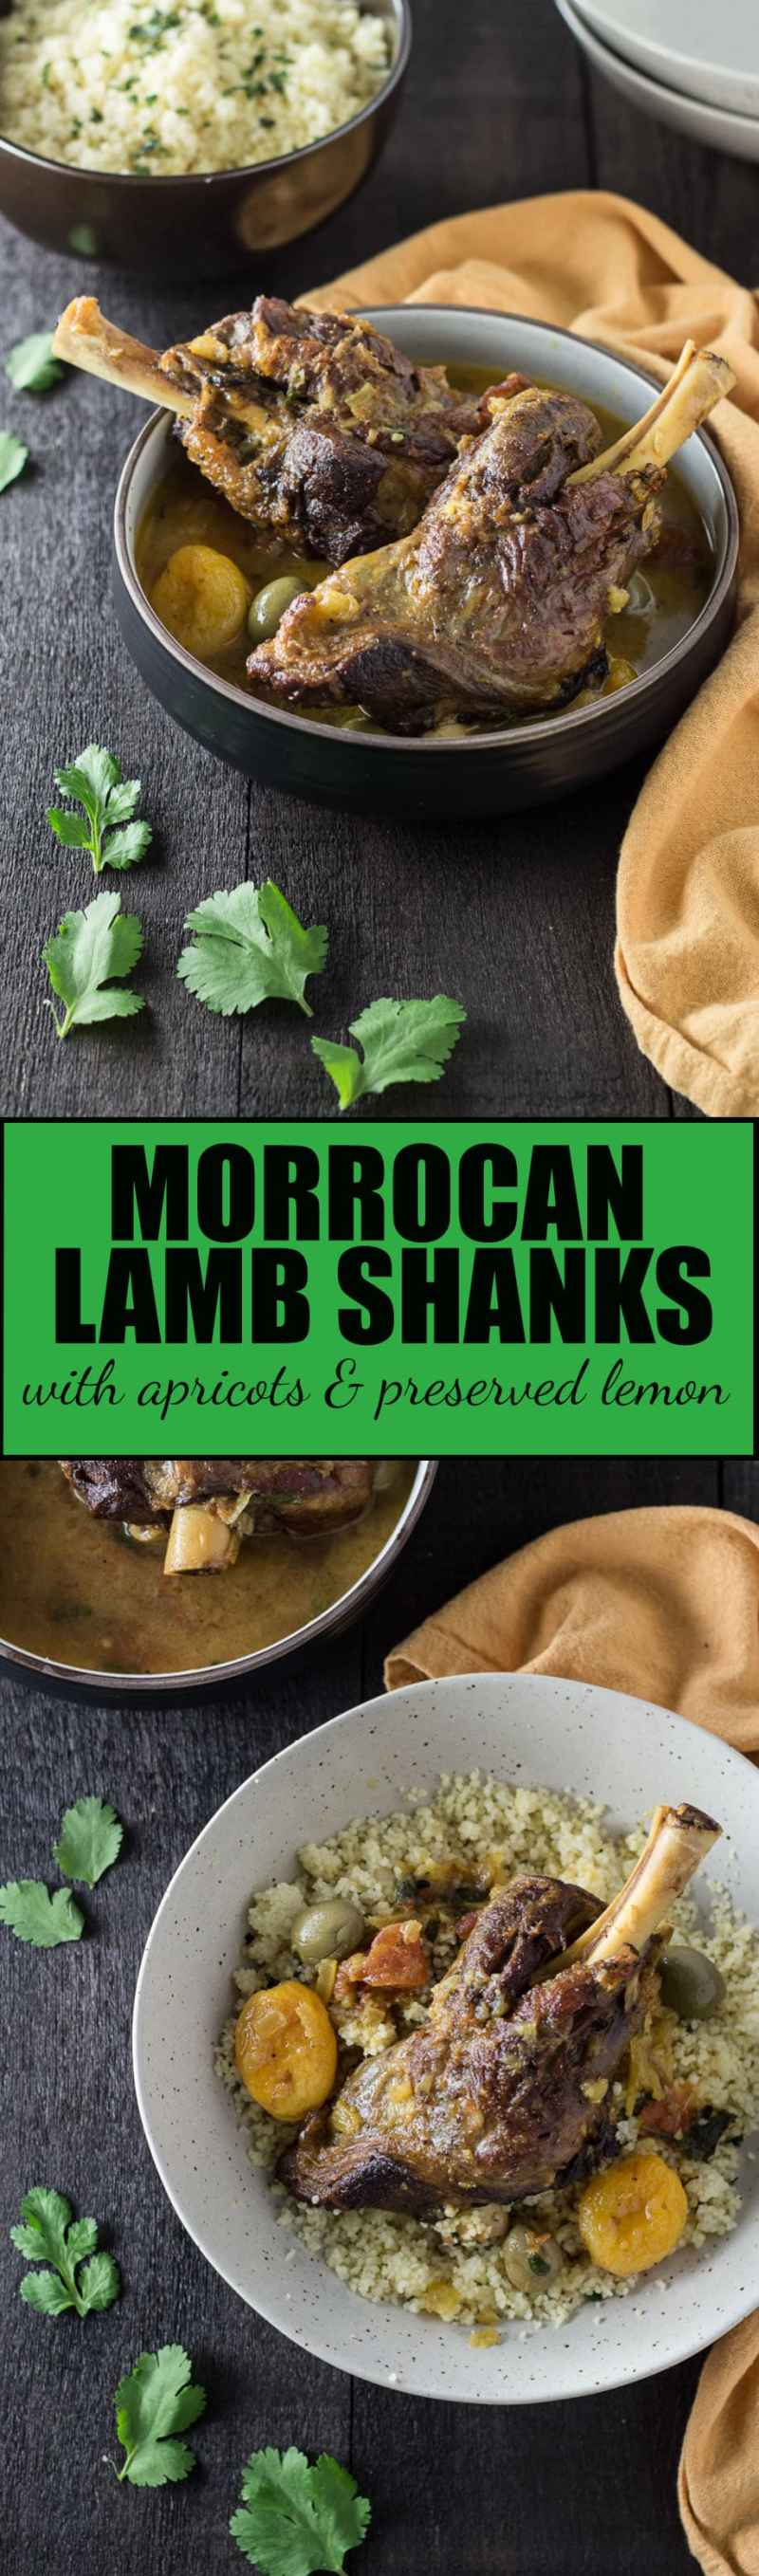 Moroccan Lamb Shanks with Apricots & Preserved Lemon